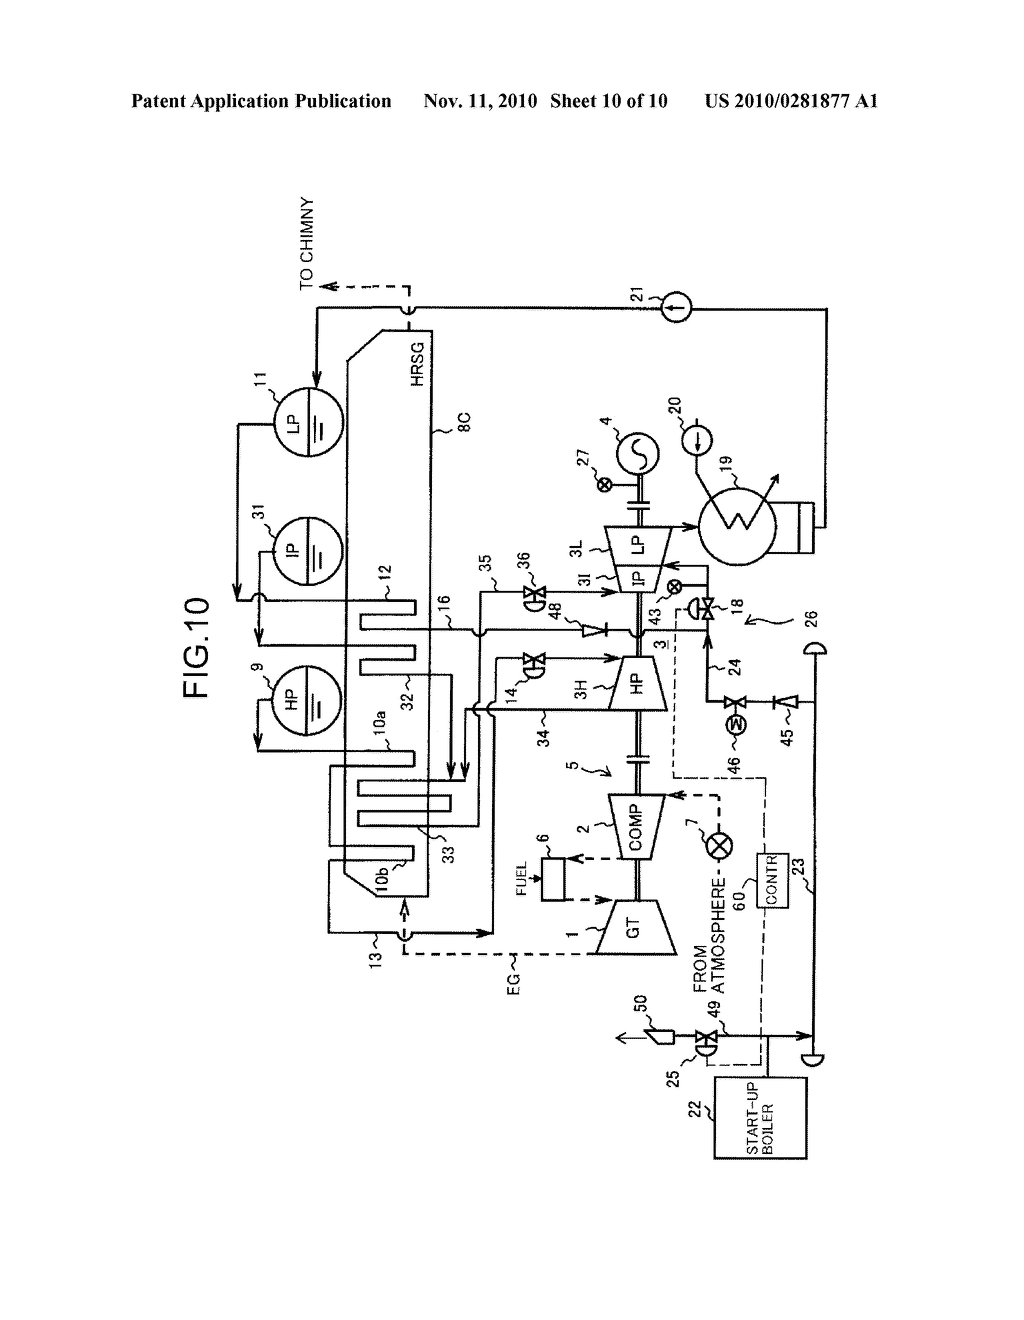 hight resolution of single shaft combined cycle power plant start up method an single shaft combined cycle power plant diagram schematic and image 11